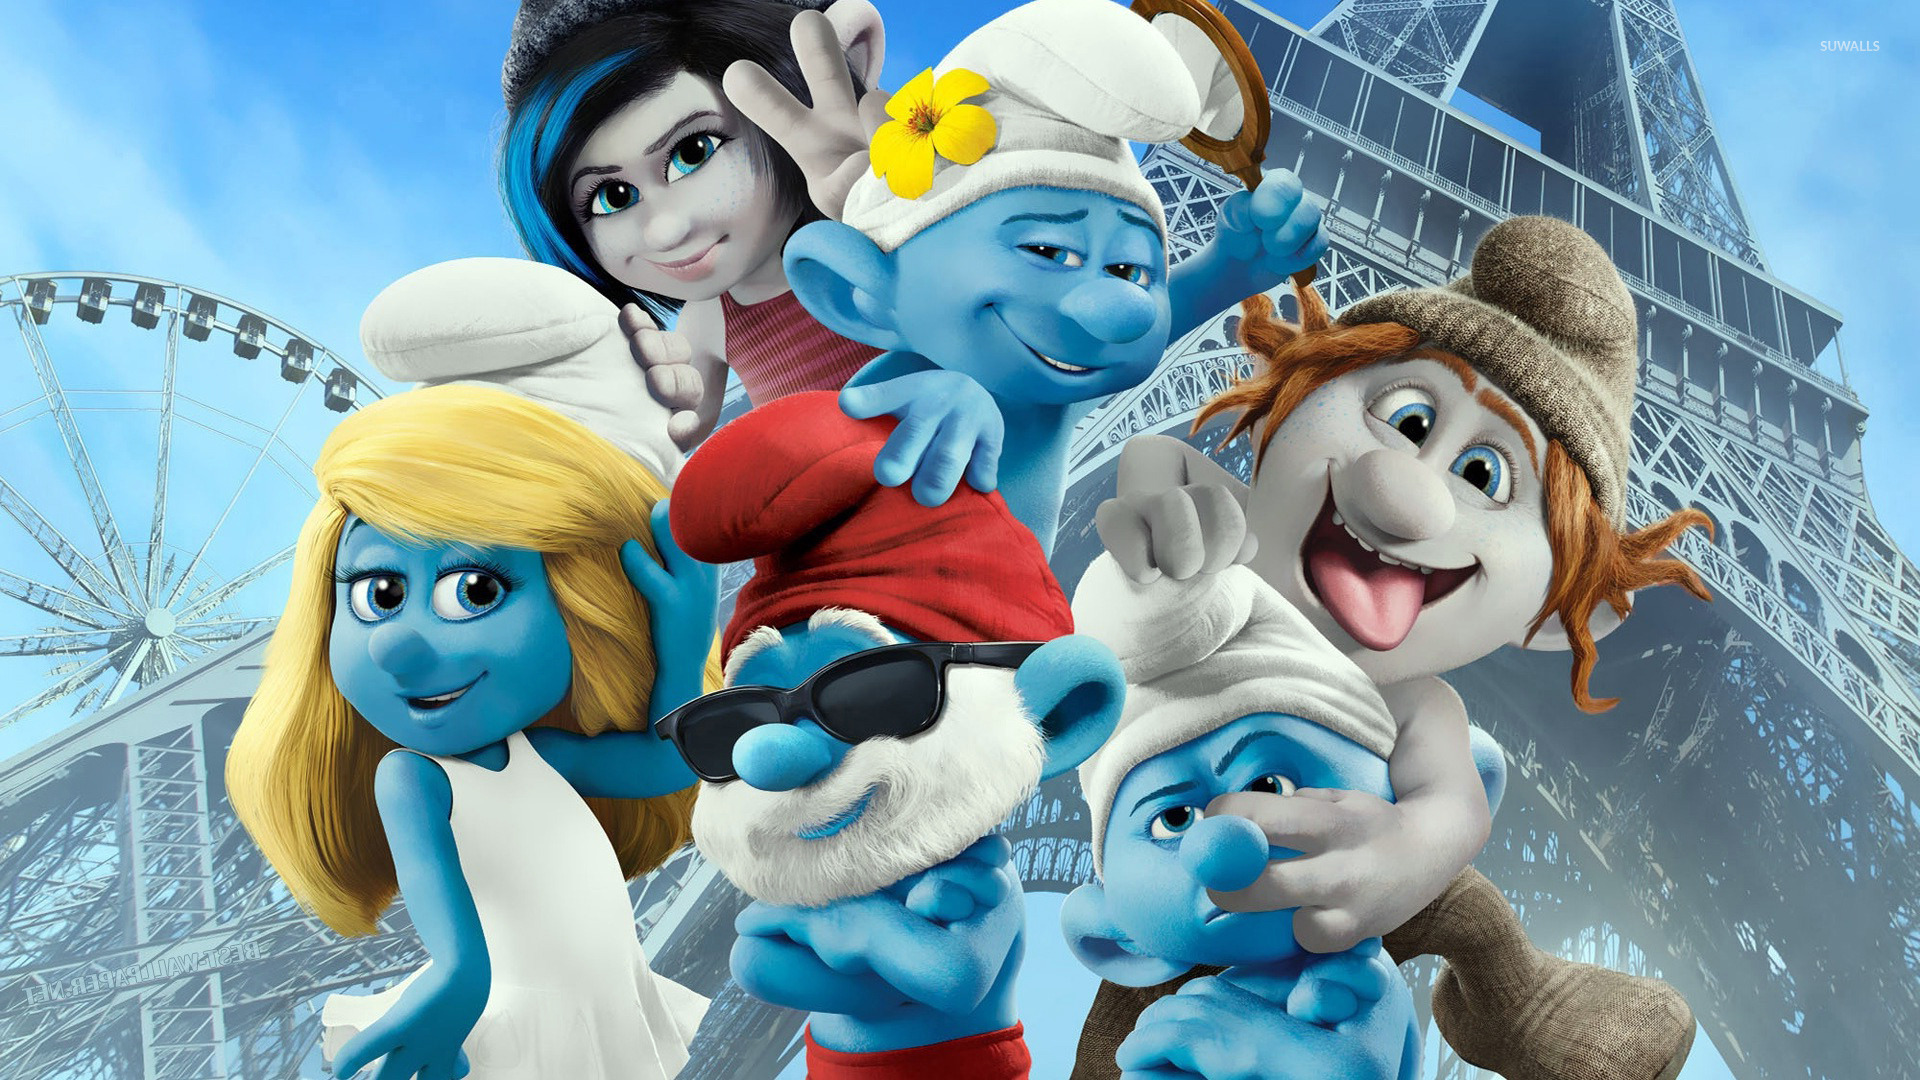 Free Friendship Quotes Wallpapers The Smurfs 2 Wallpaper Cartoon Wallpapers 22465